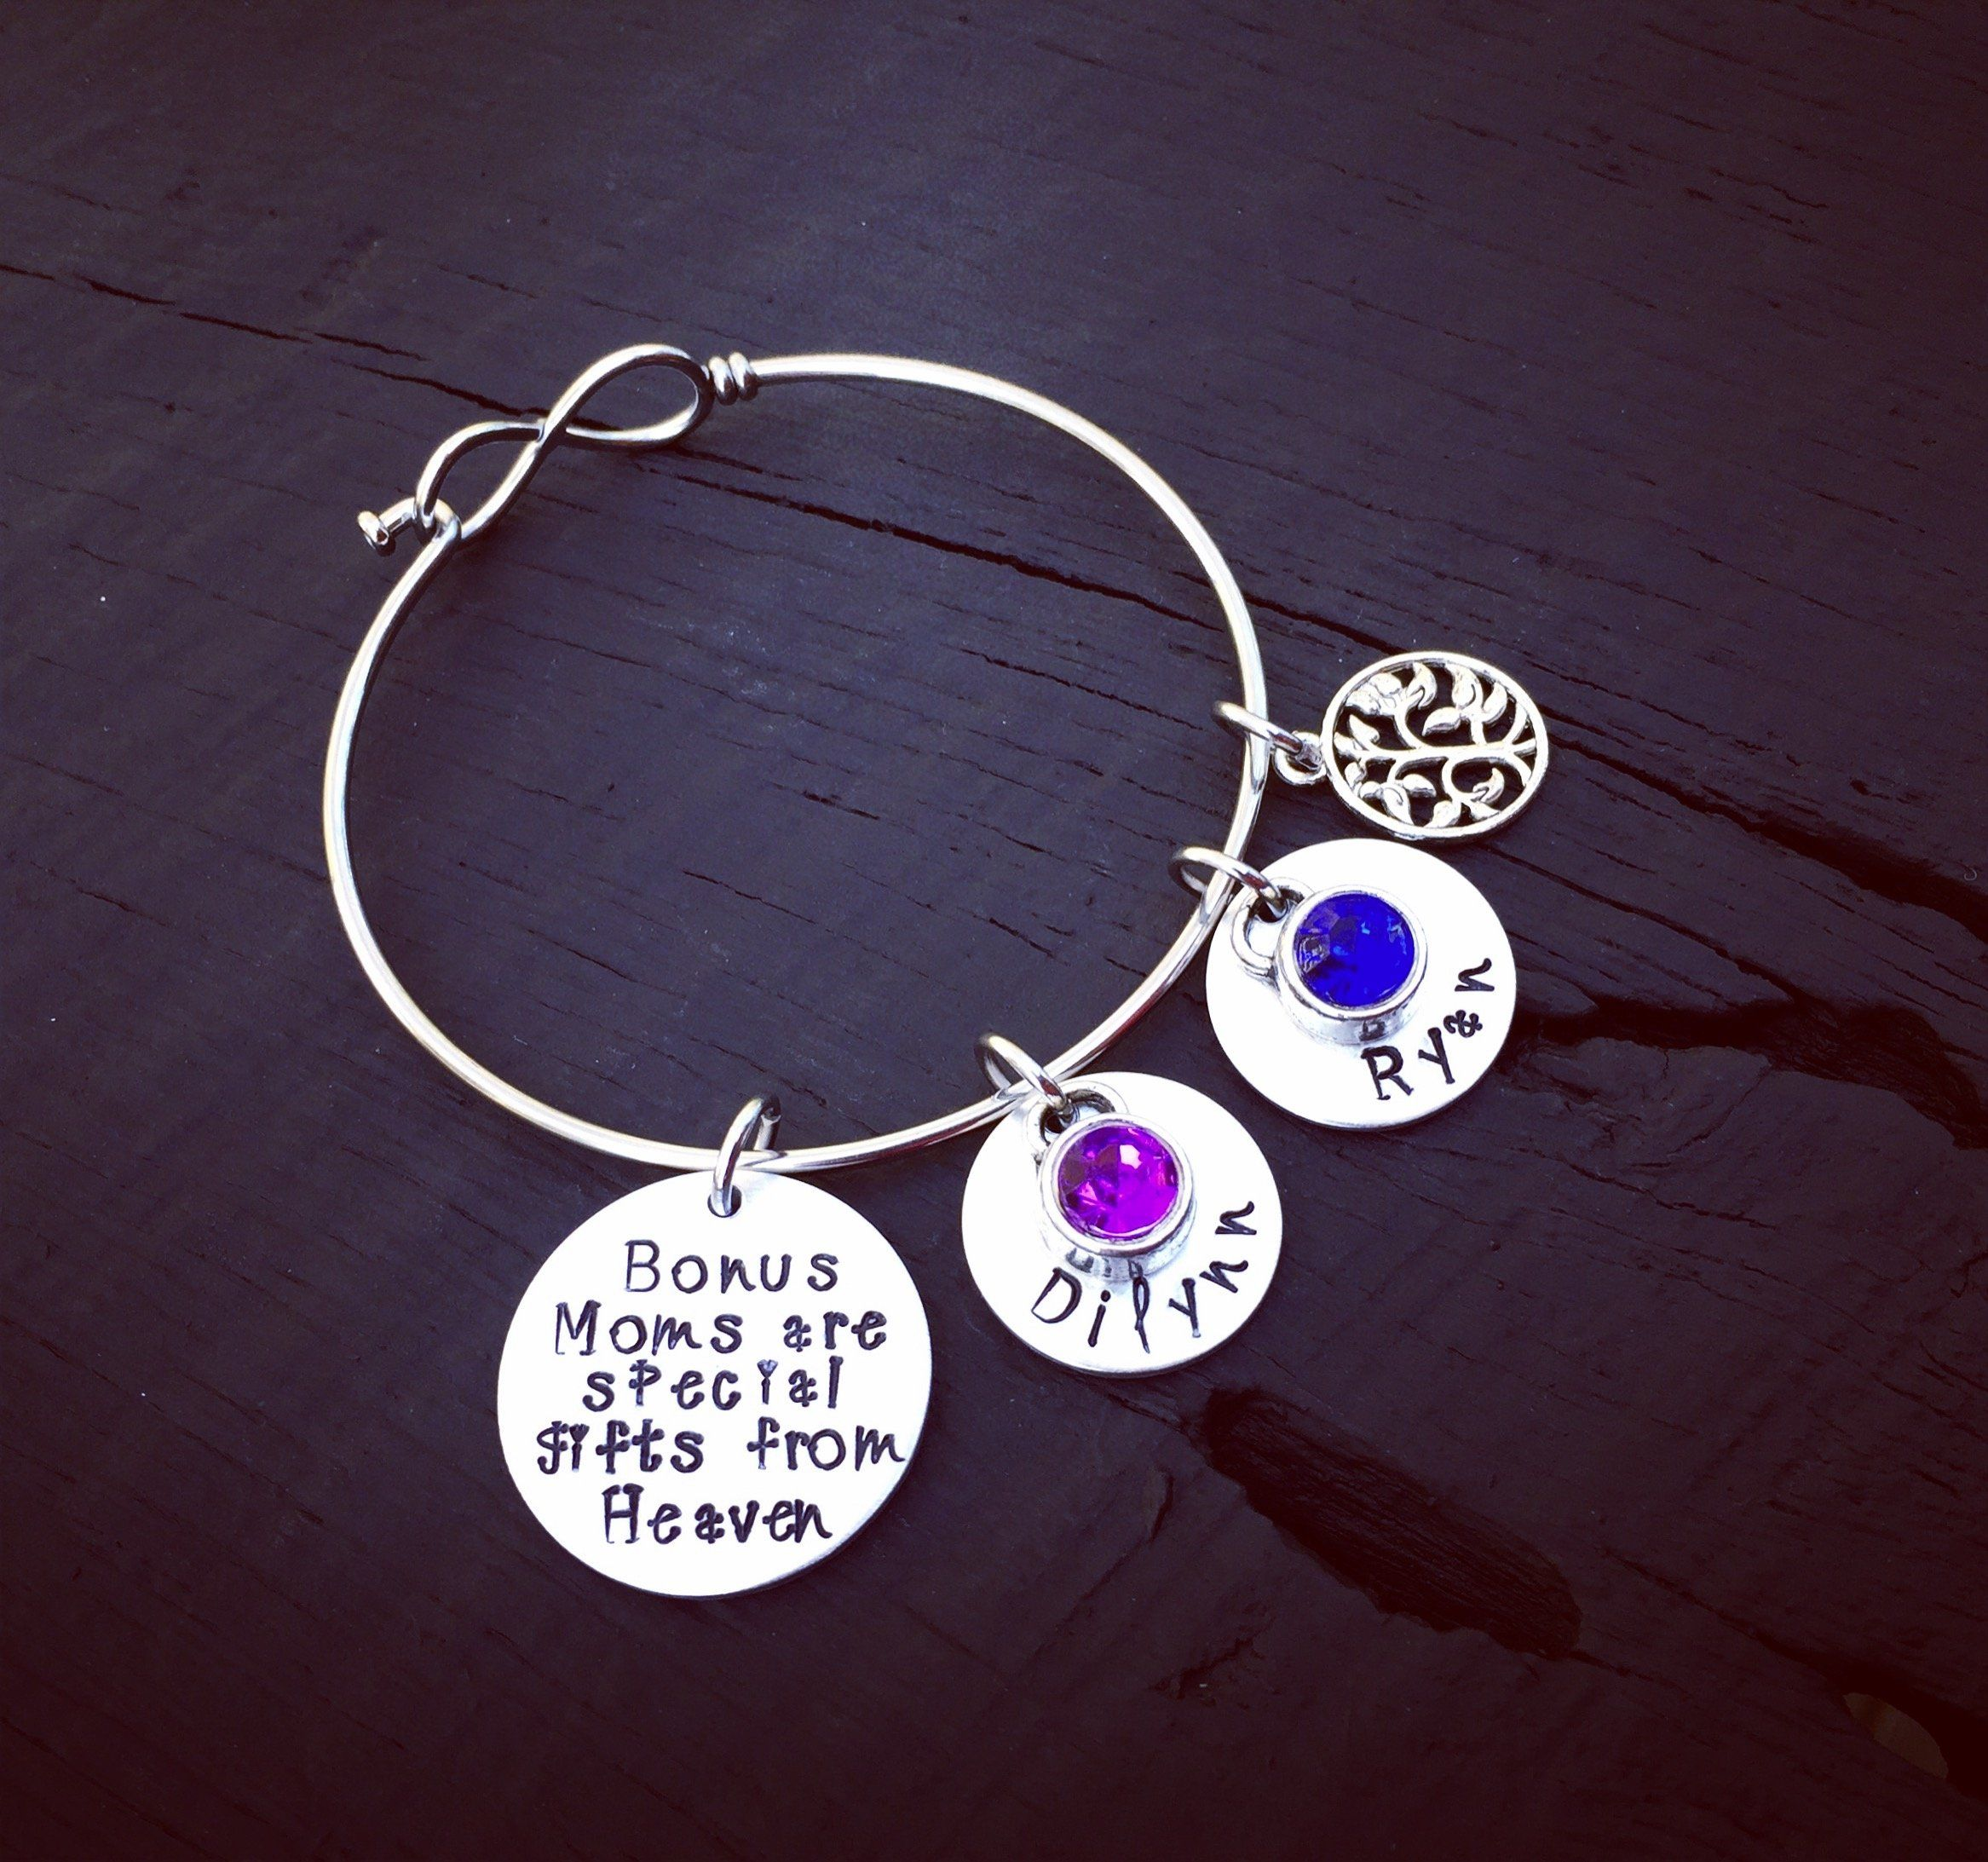 sister charm bracelet bangle butterfly p jewellery il bracelets gift mother jewelry to friend best tjzu daughter fullxfull